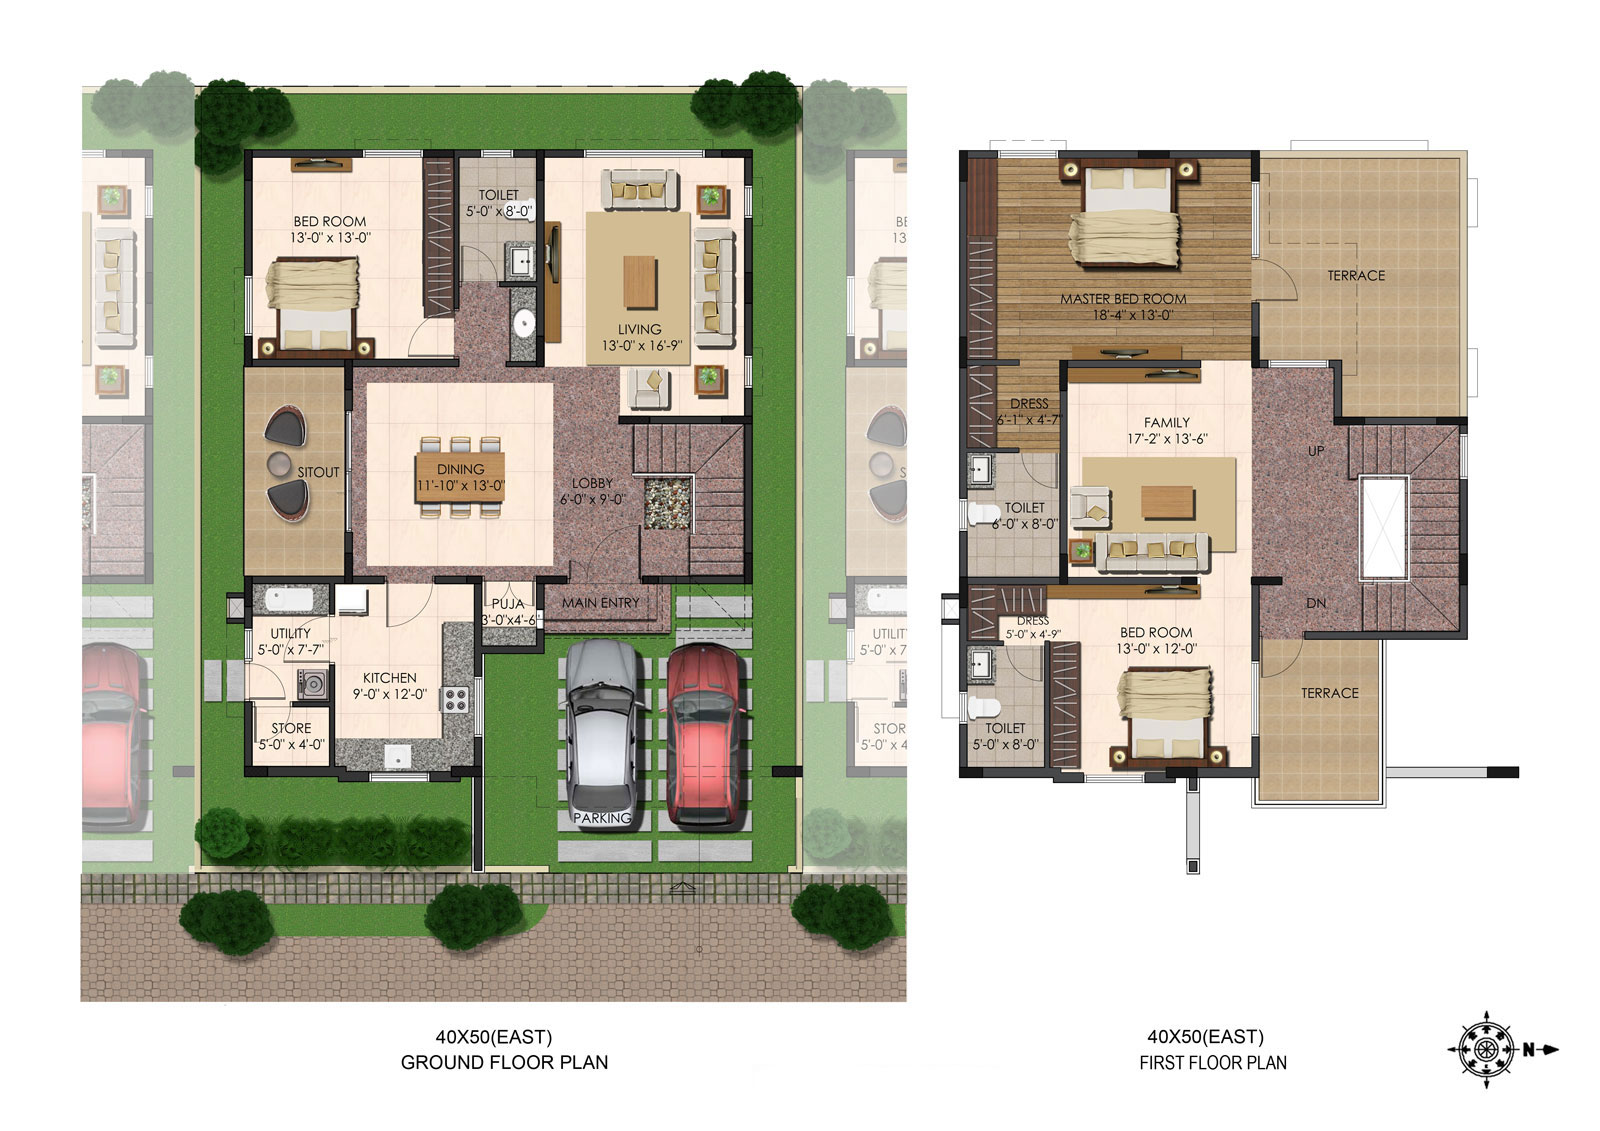 Home design for 30x40 site joy studio design gallery for House plan for 30x40 site